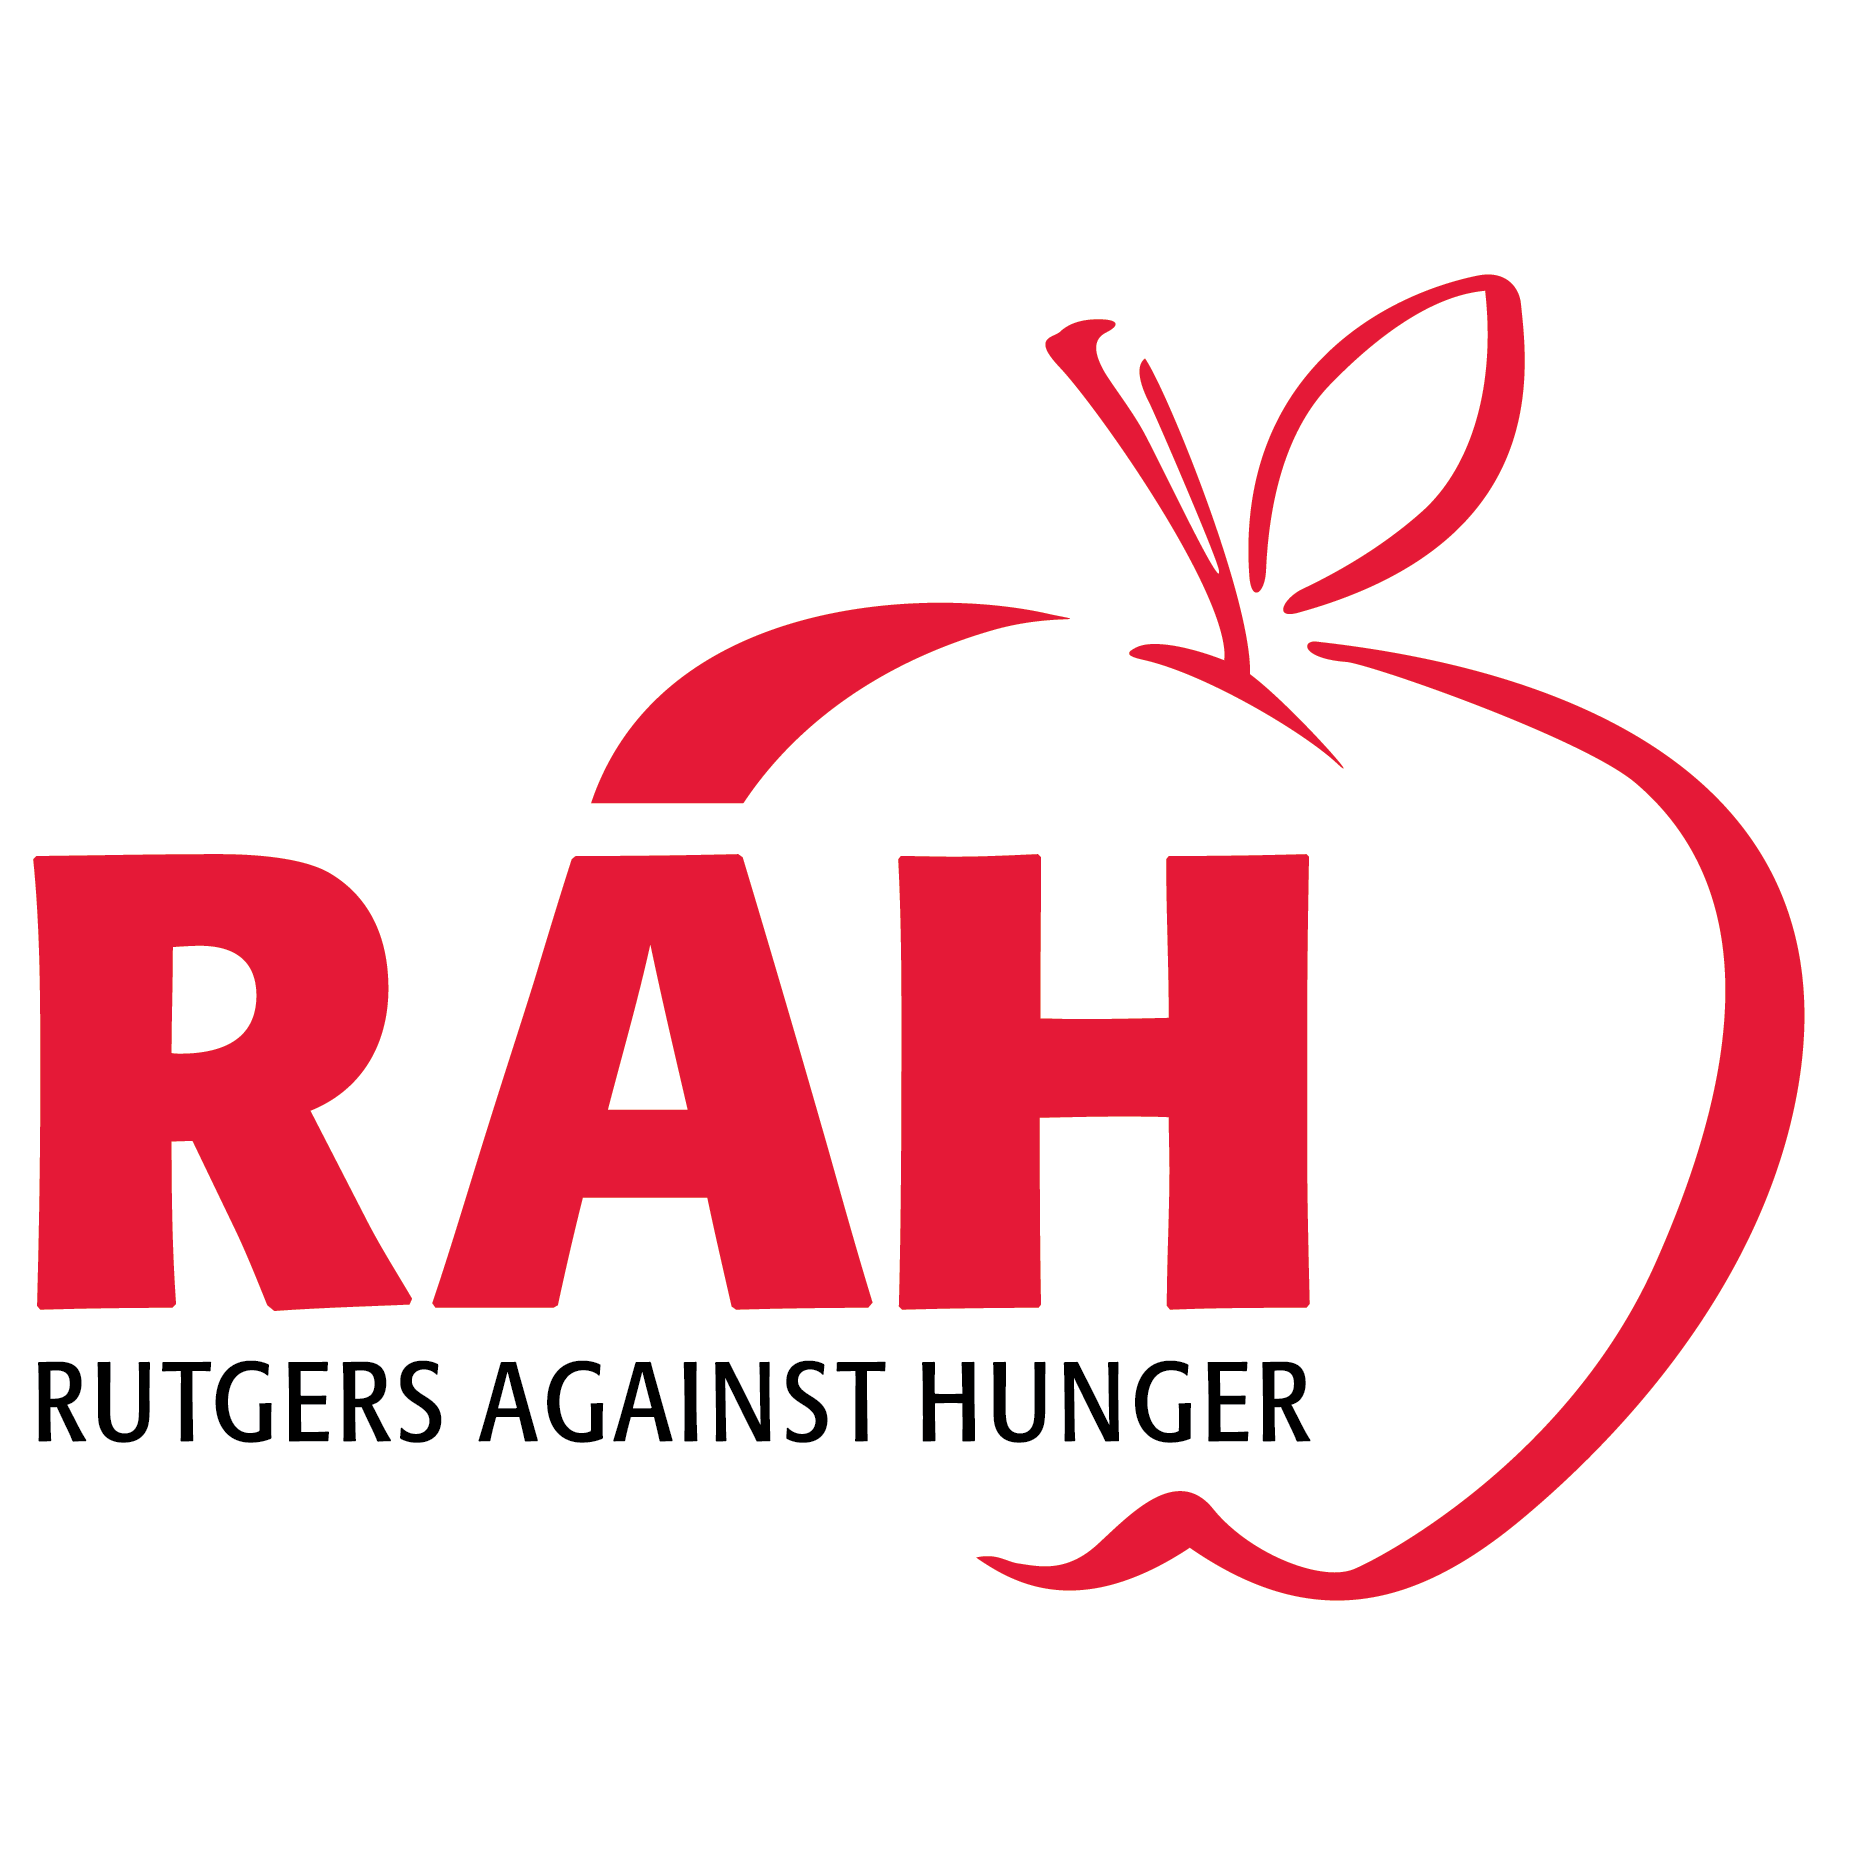 Rutgers Against Hunger